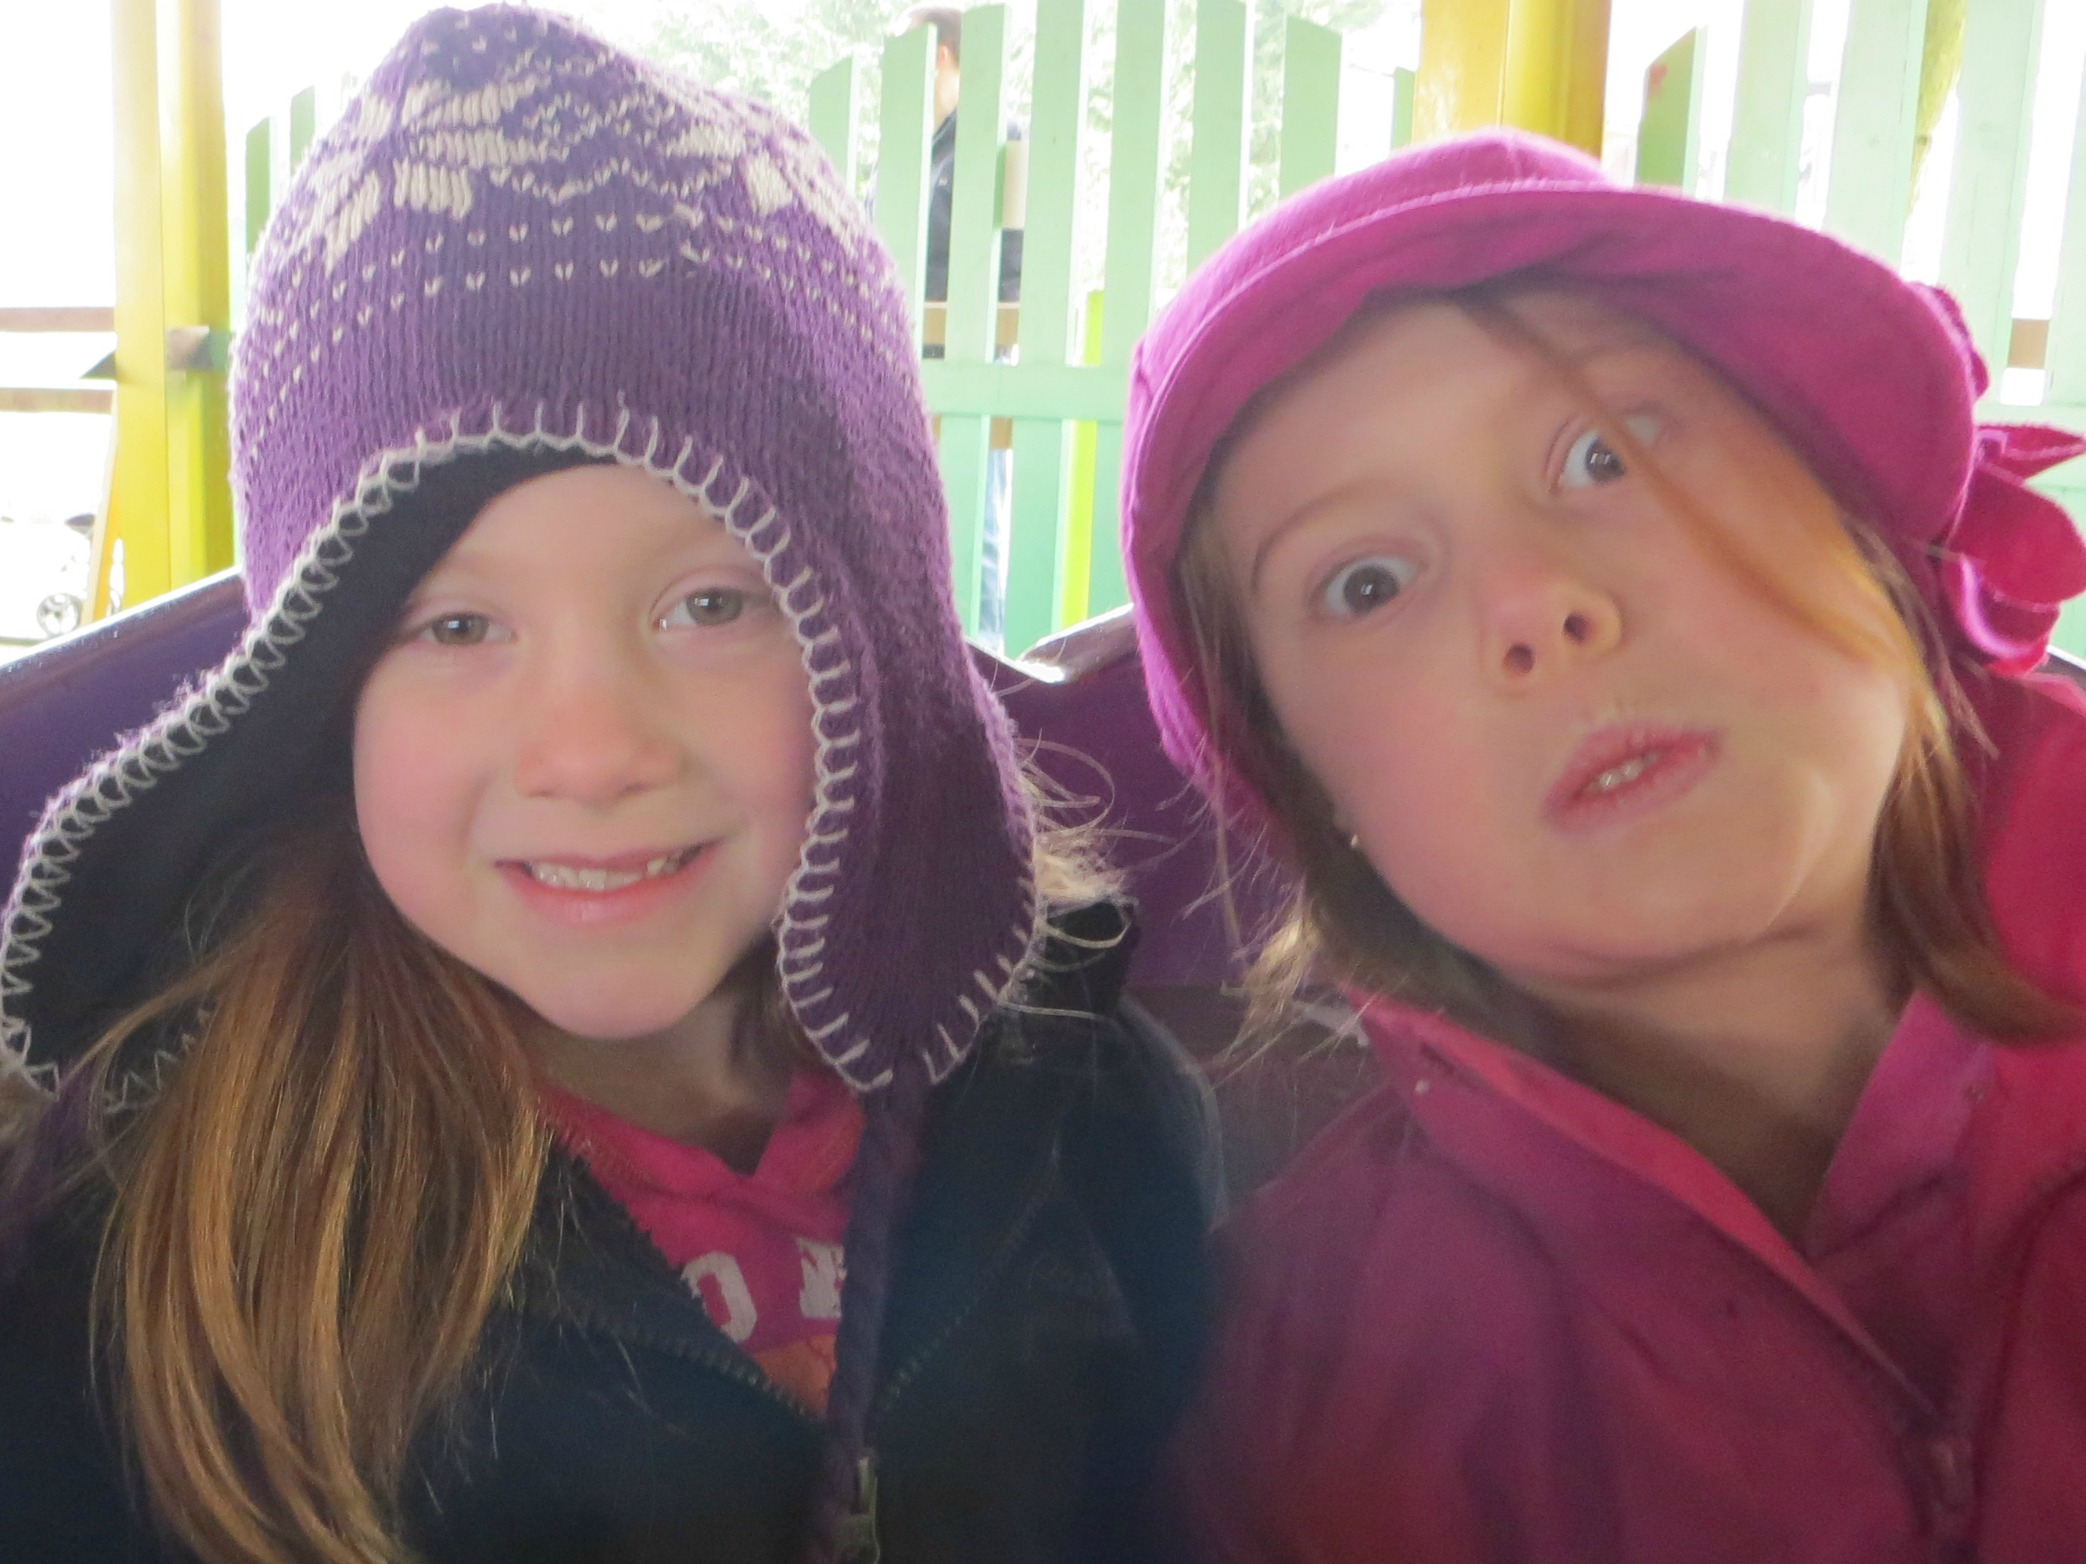 #StayPlayExplore from Go Leicestershire